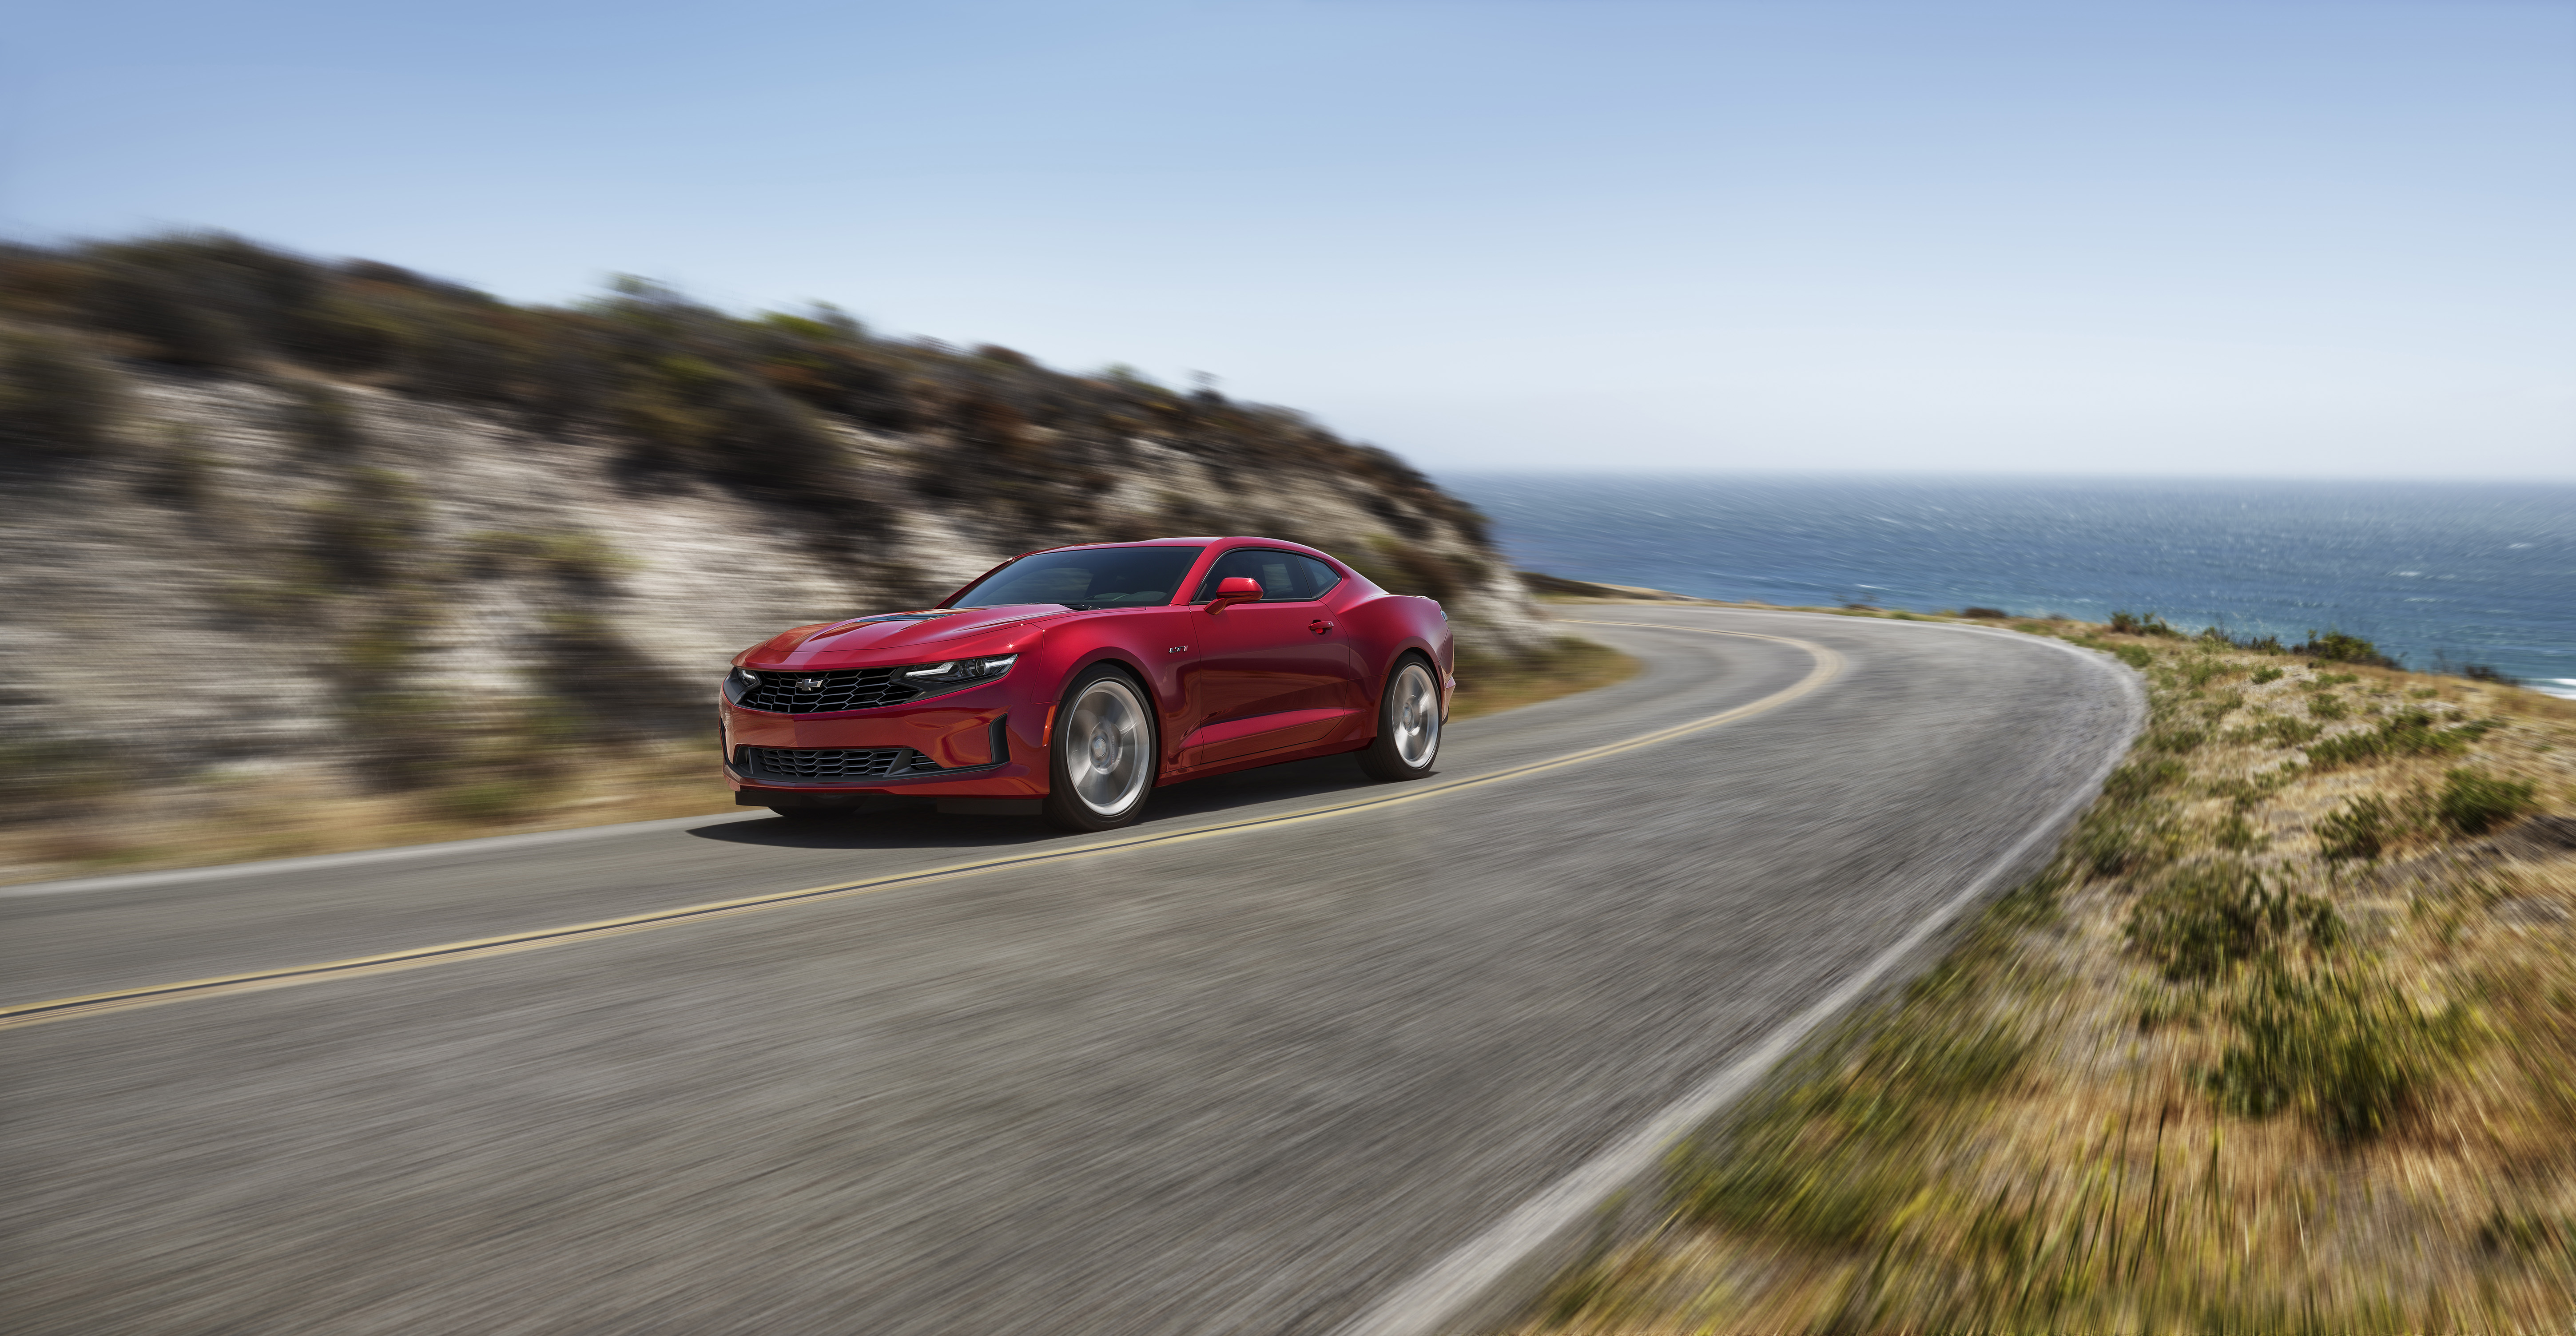 Ss Styling Changes Lead 2020 Camaro Updates